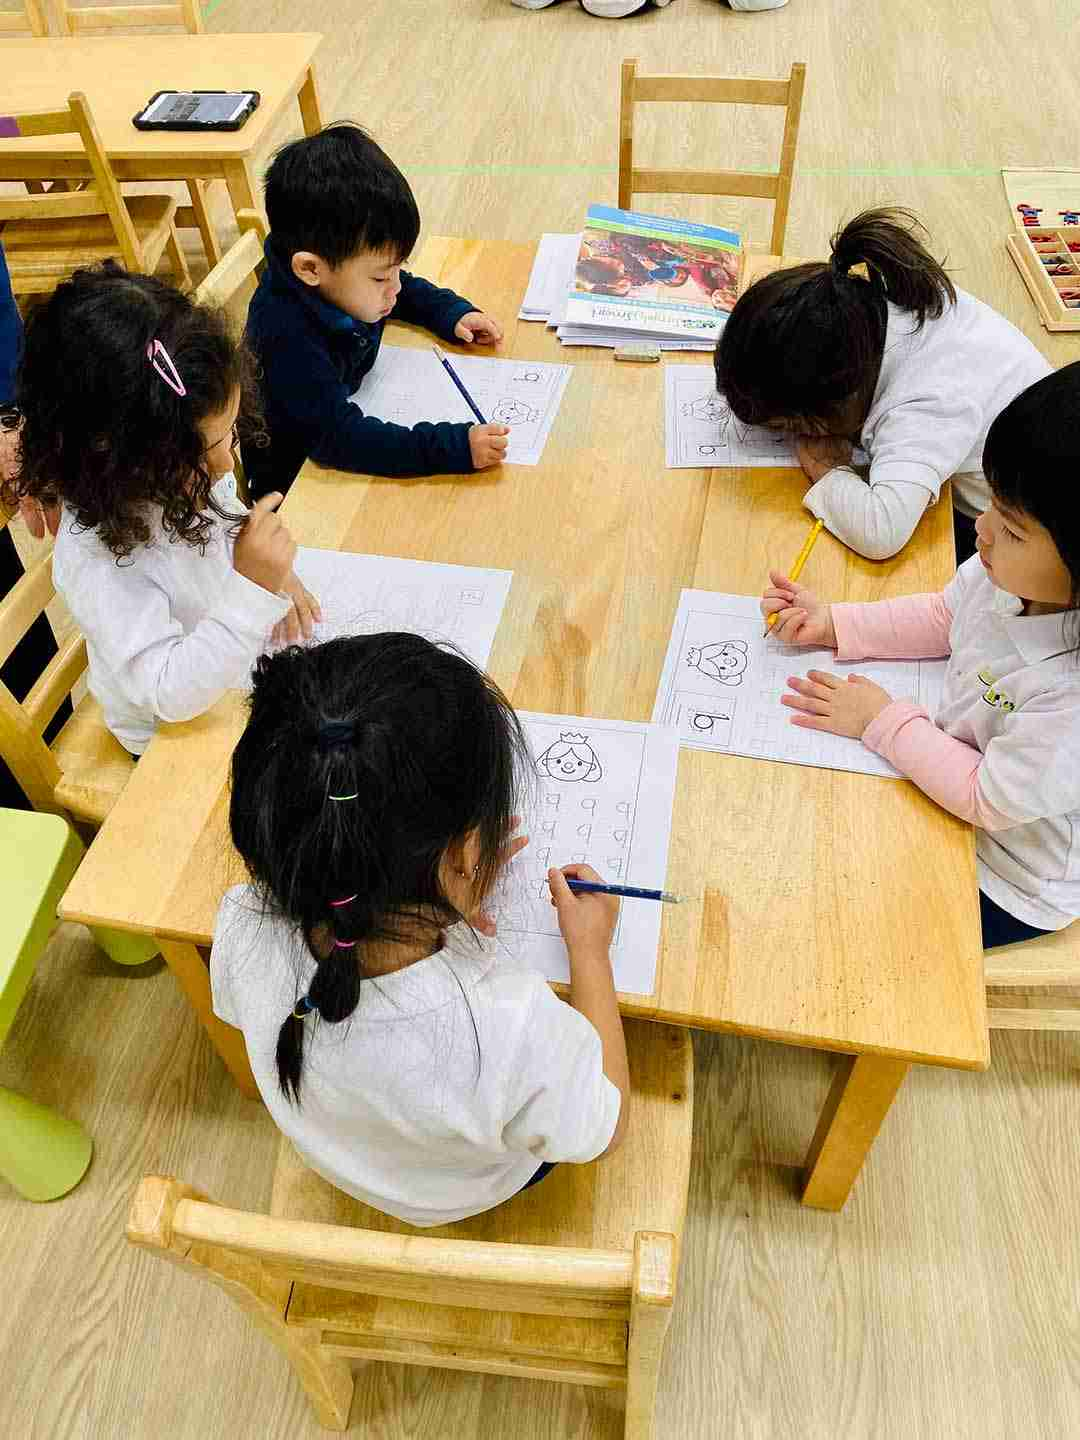 Five children sitting around a table and writing on their worksheet